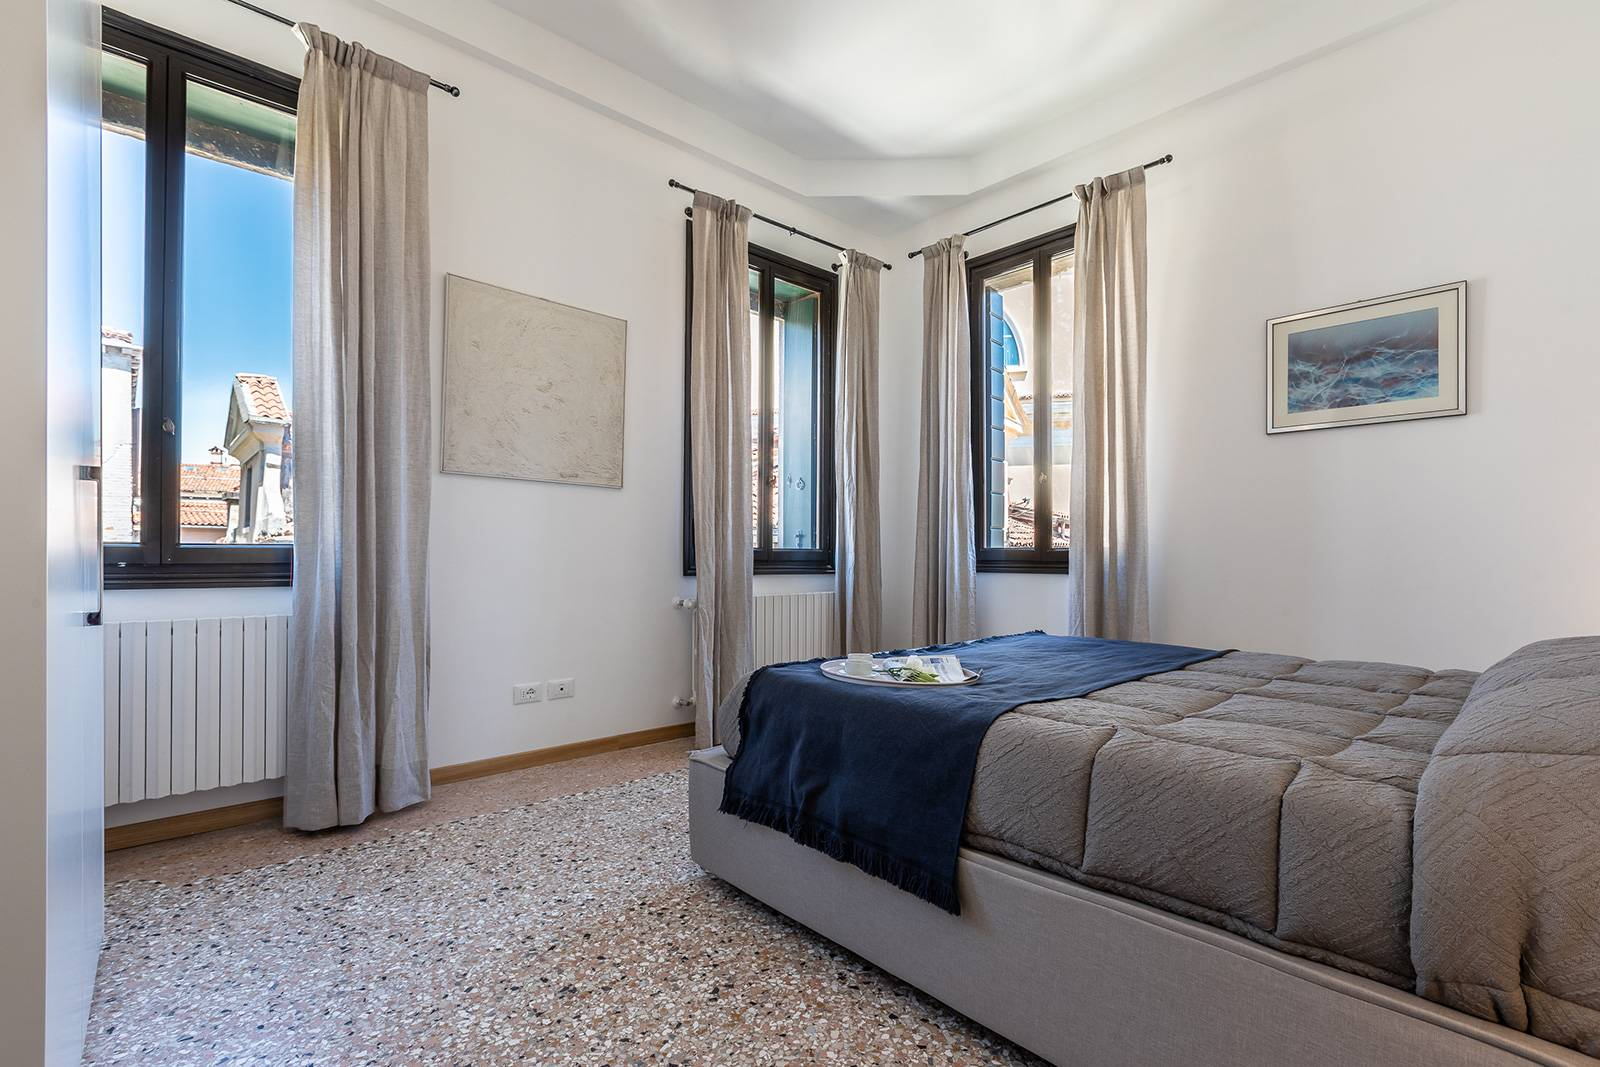 1st double bedroom with stunning canal view